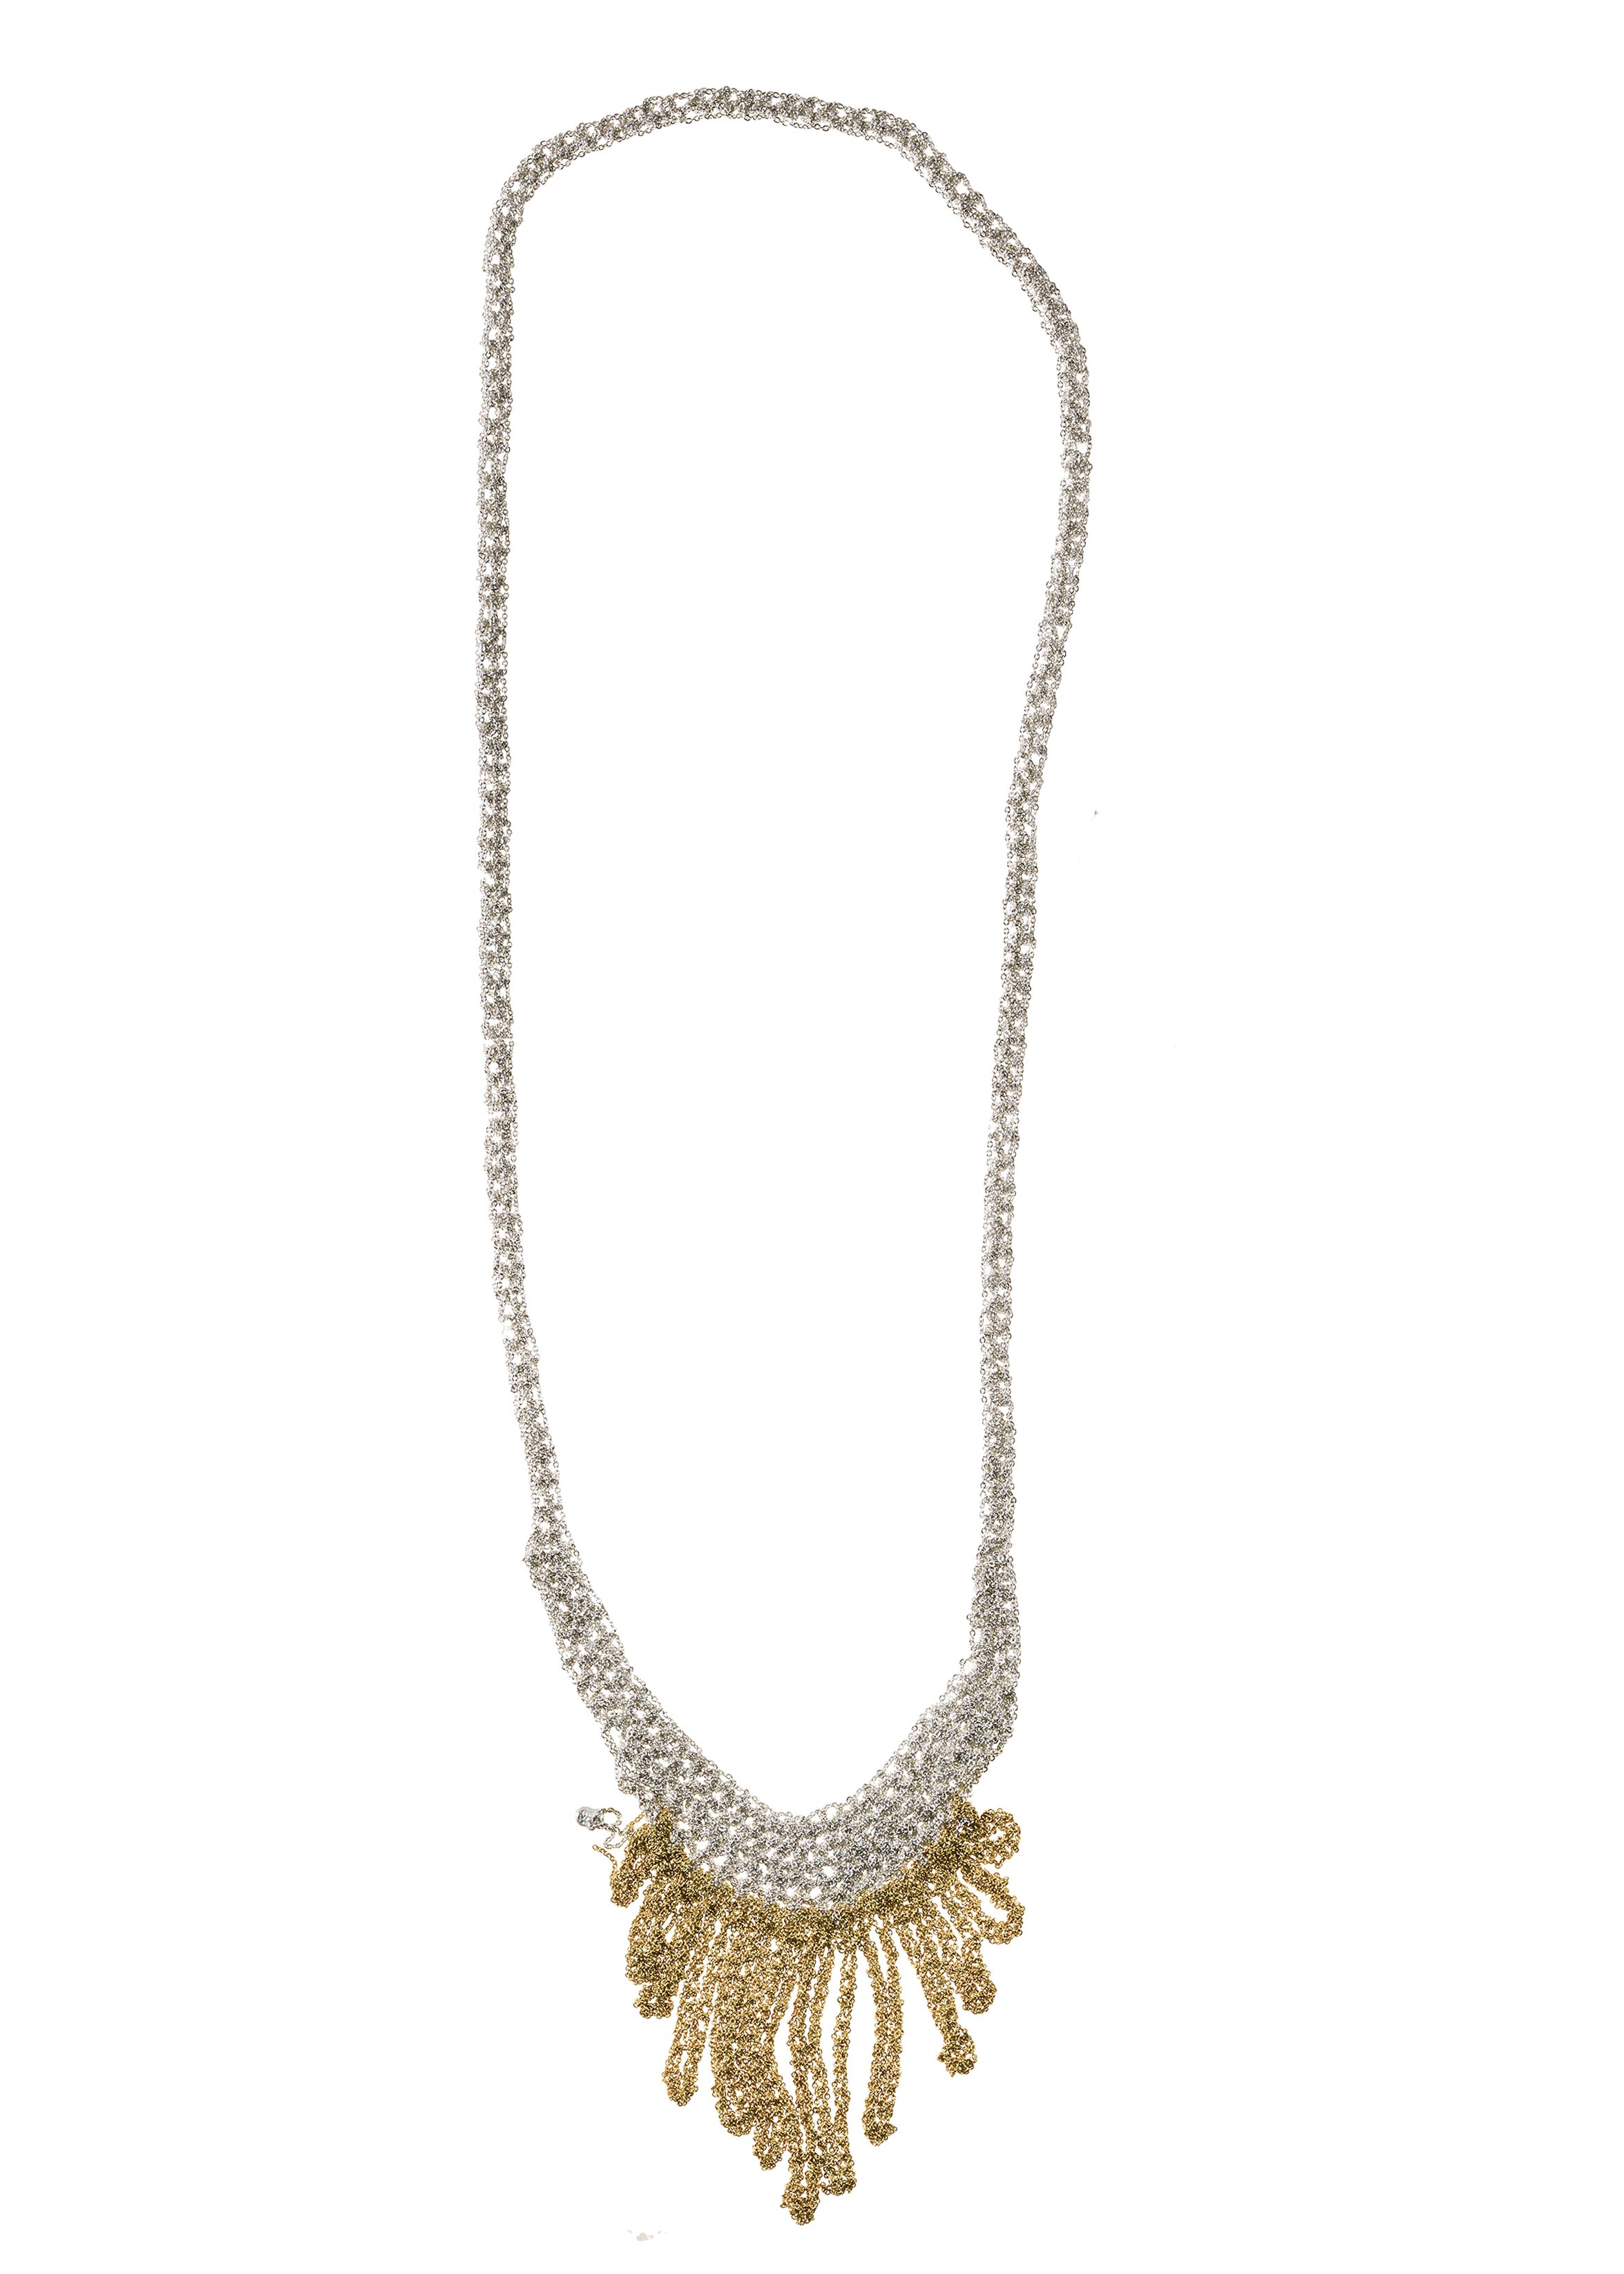 Small Fringe Necklace in Silver + Haze